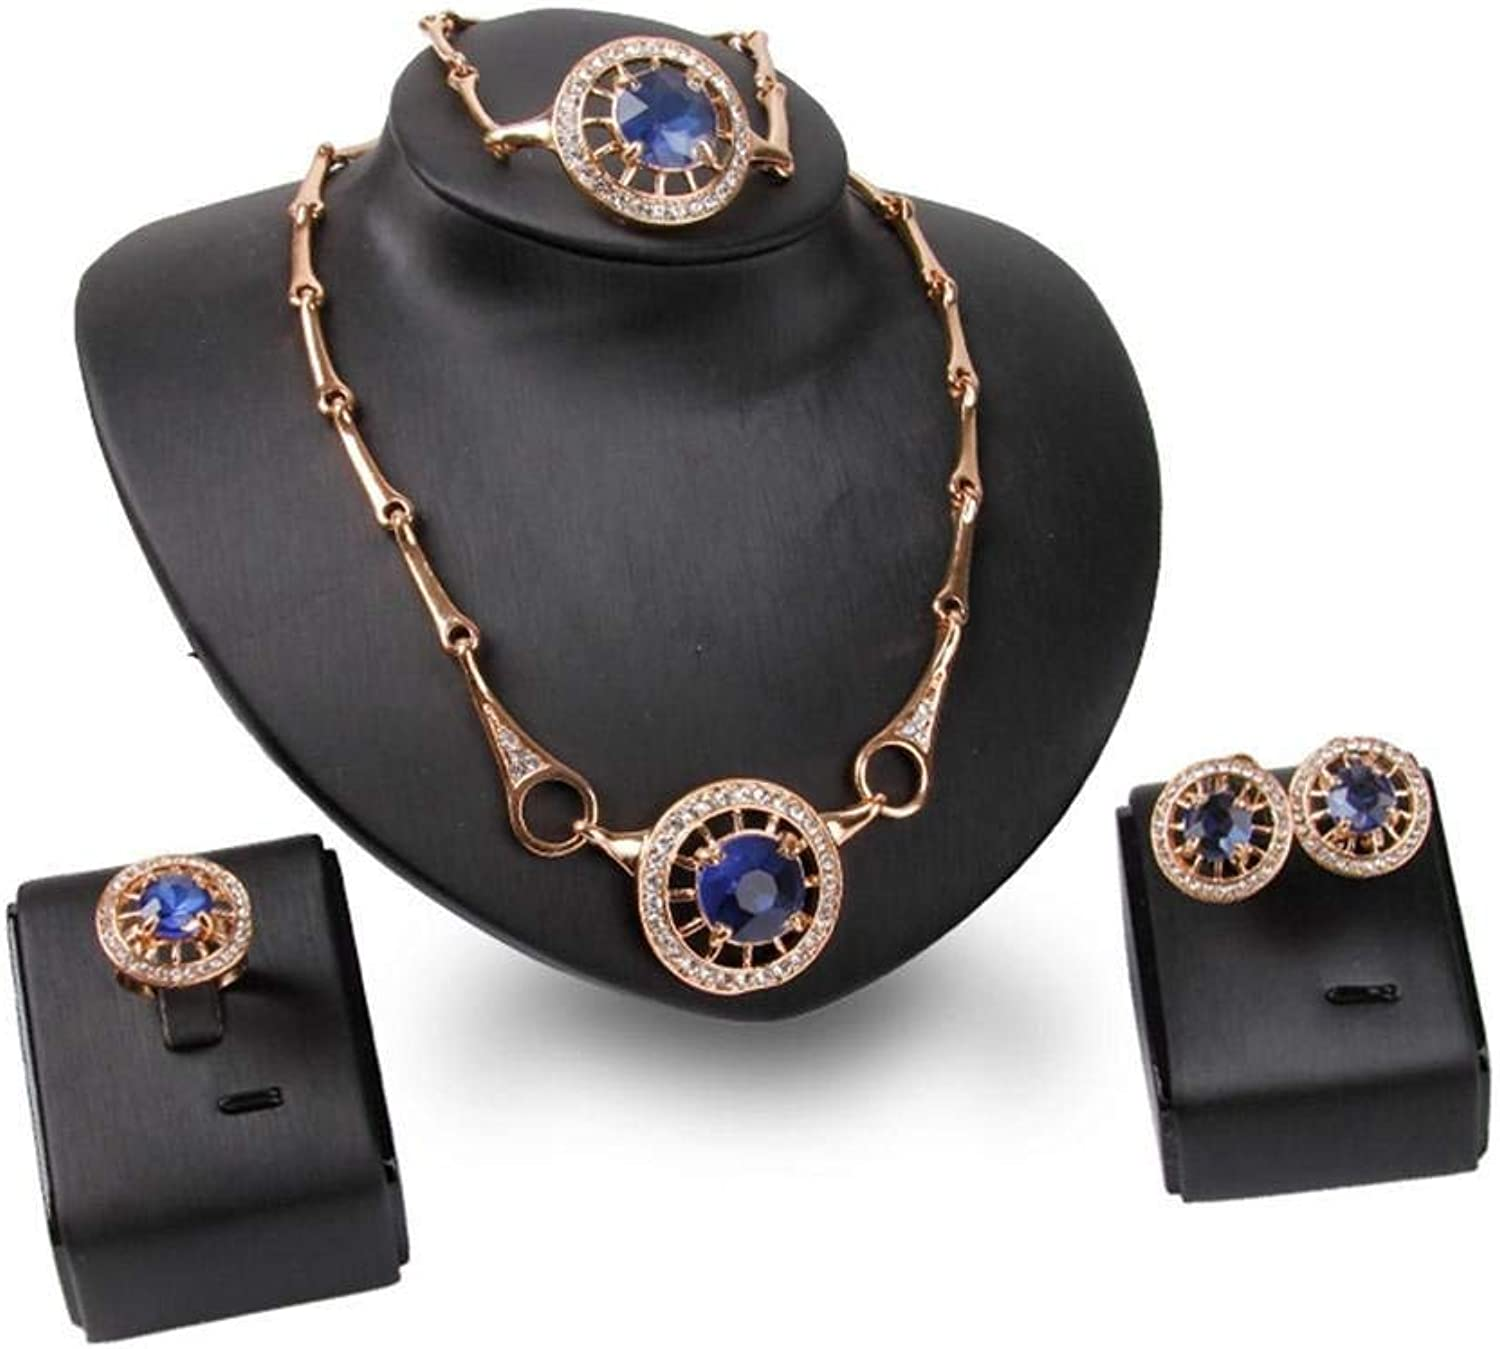 Rhinestone Necklace The Grade Alloy FourPiece Necklace Earrings Set by Enking